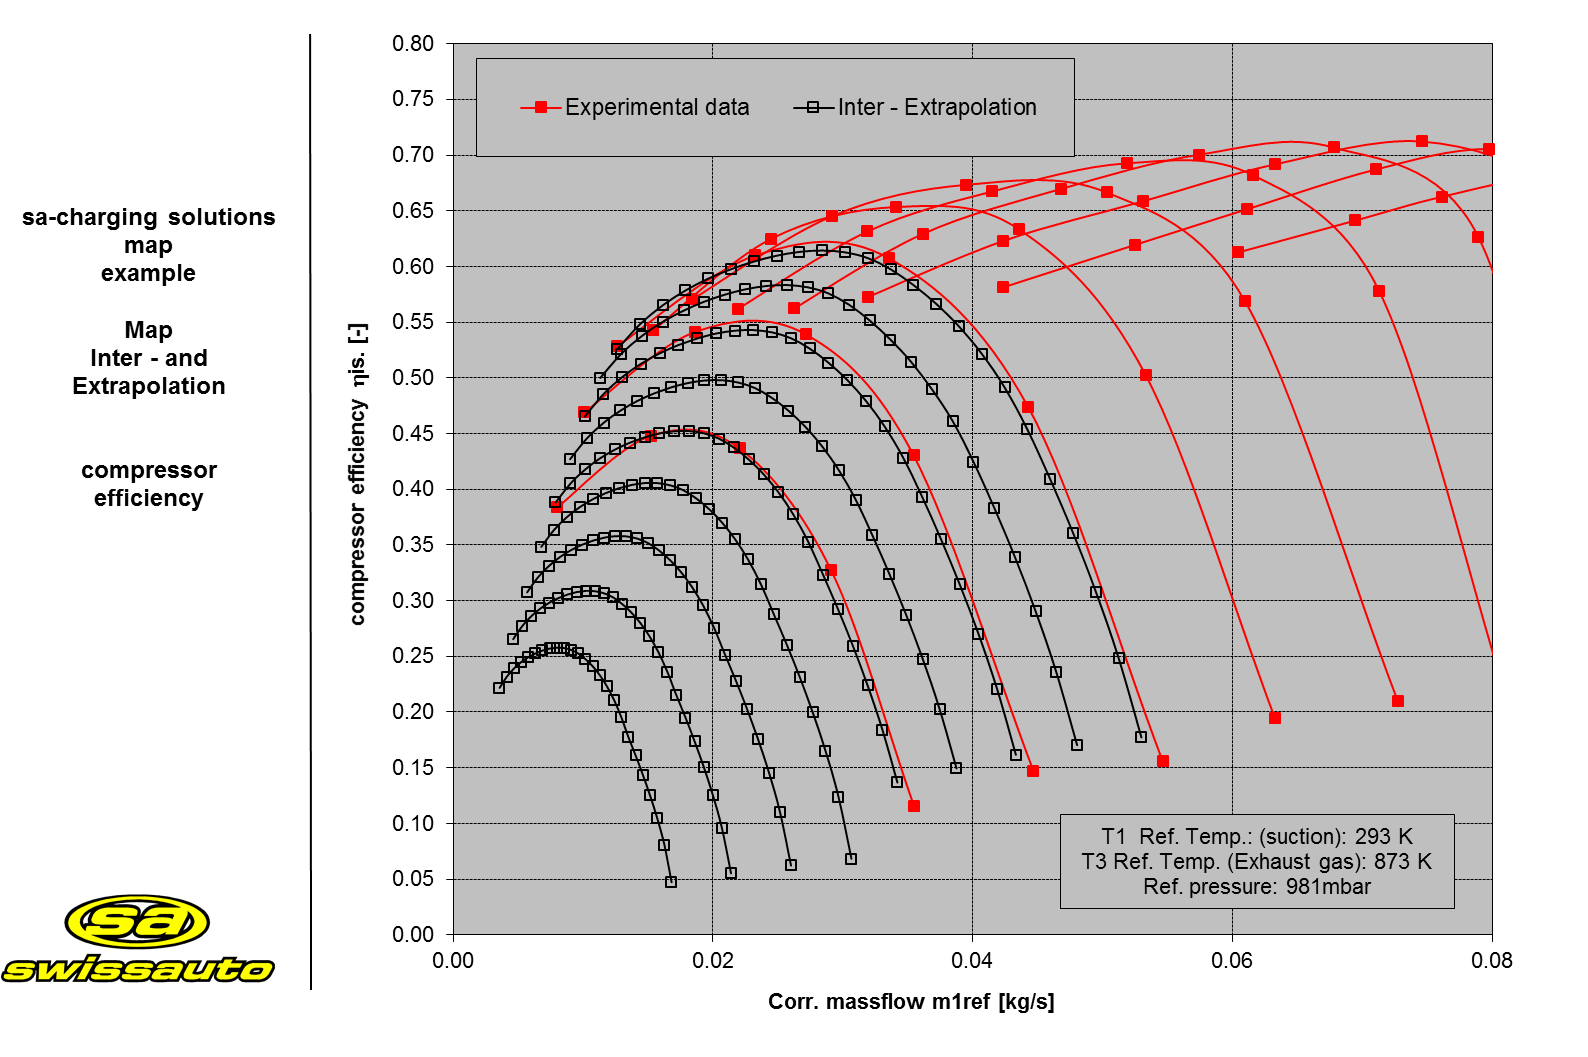 Inter- and extrapolation of the compressor efficiency